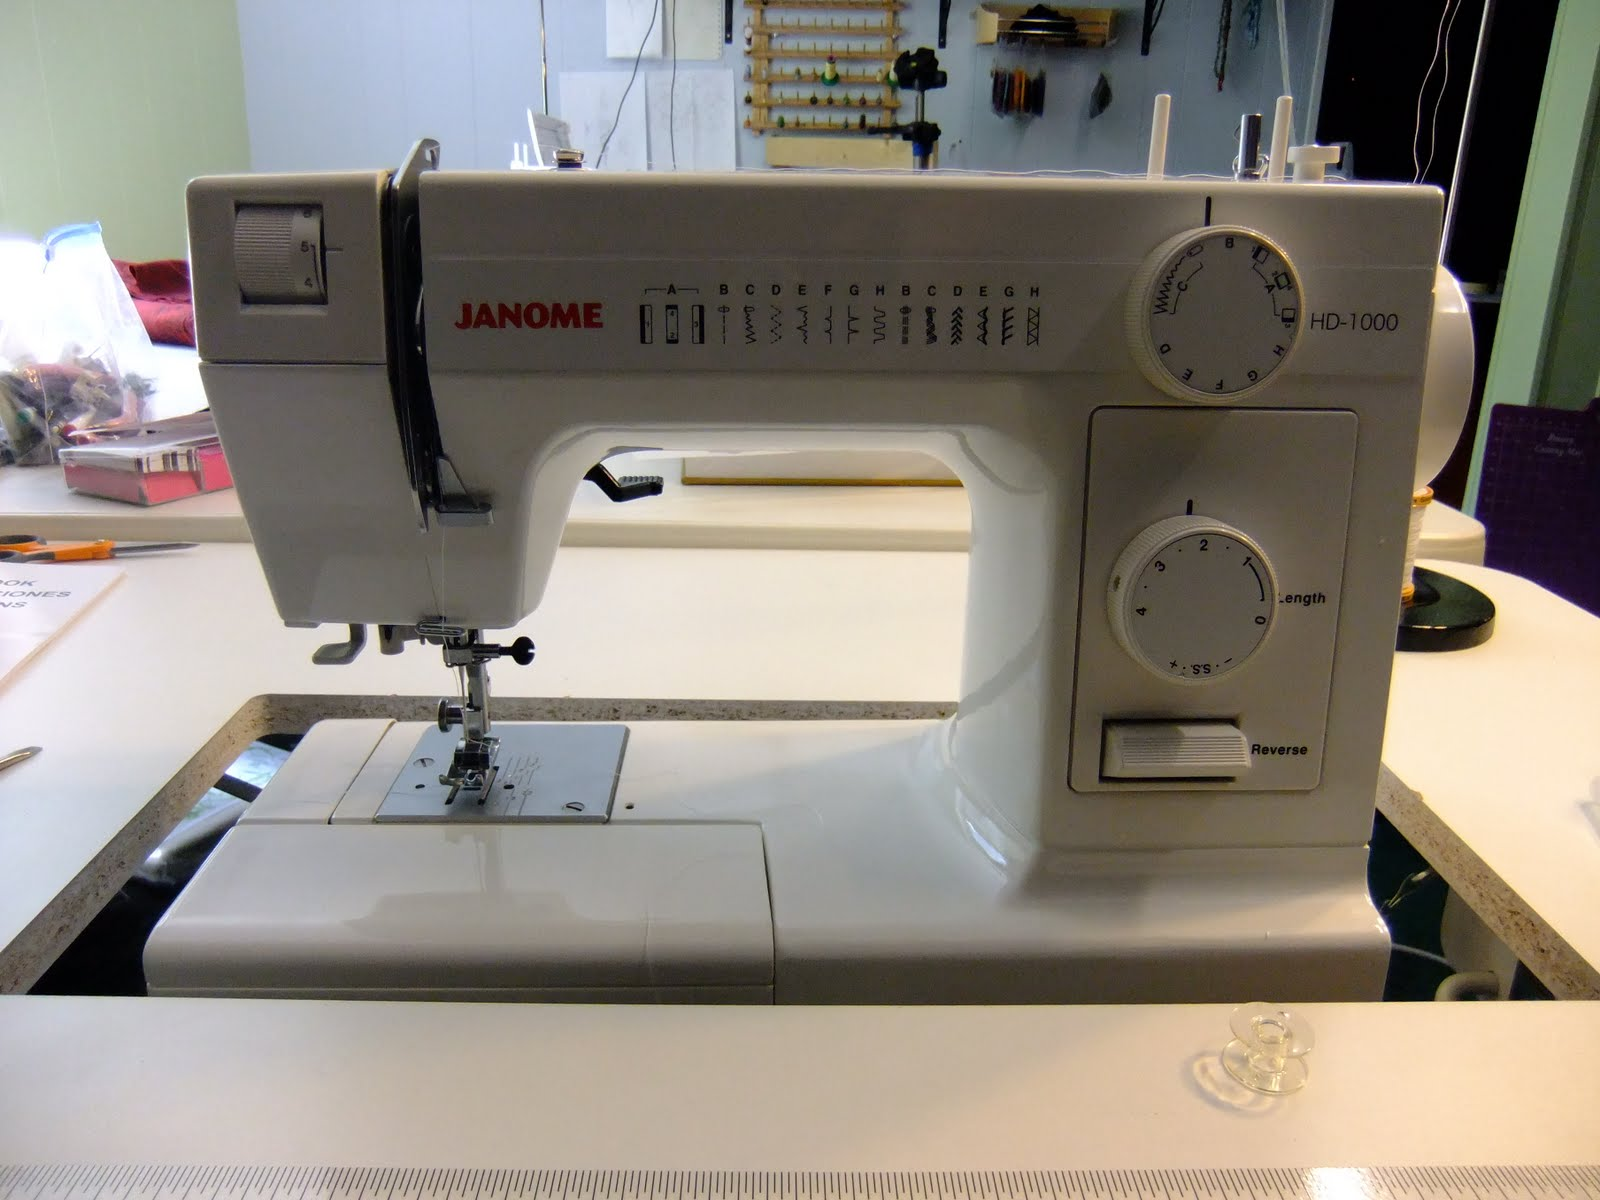 The Free Motion Quilting Project: General Sewing on the Janome HD 1000 : janome free motion quilting - Adamdwight.com